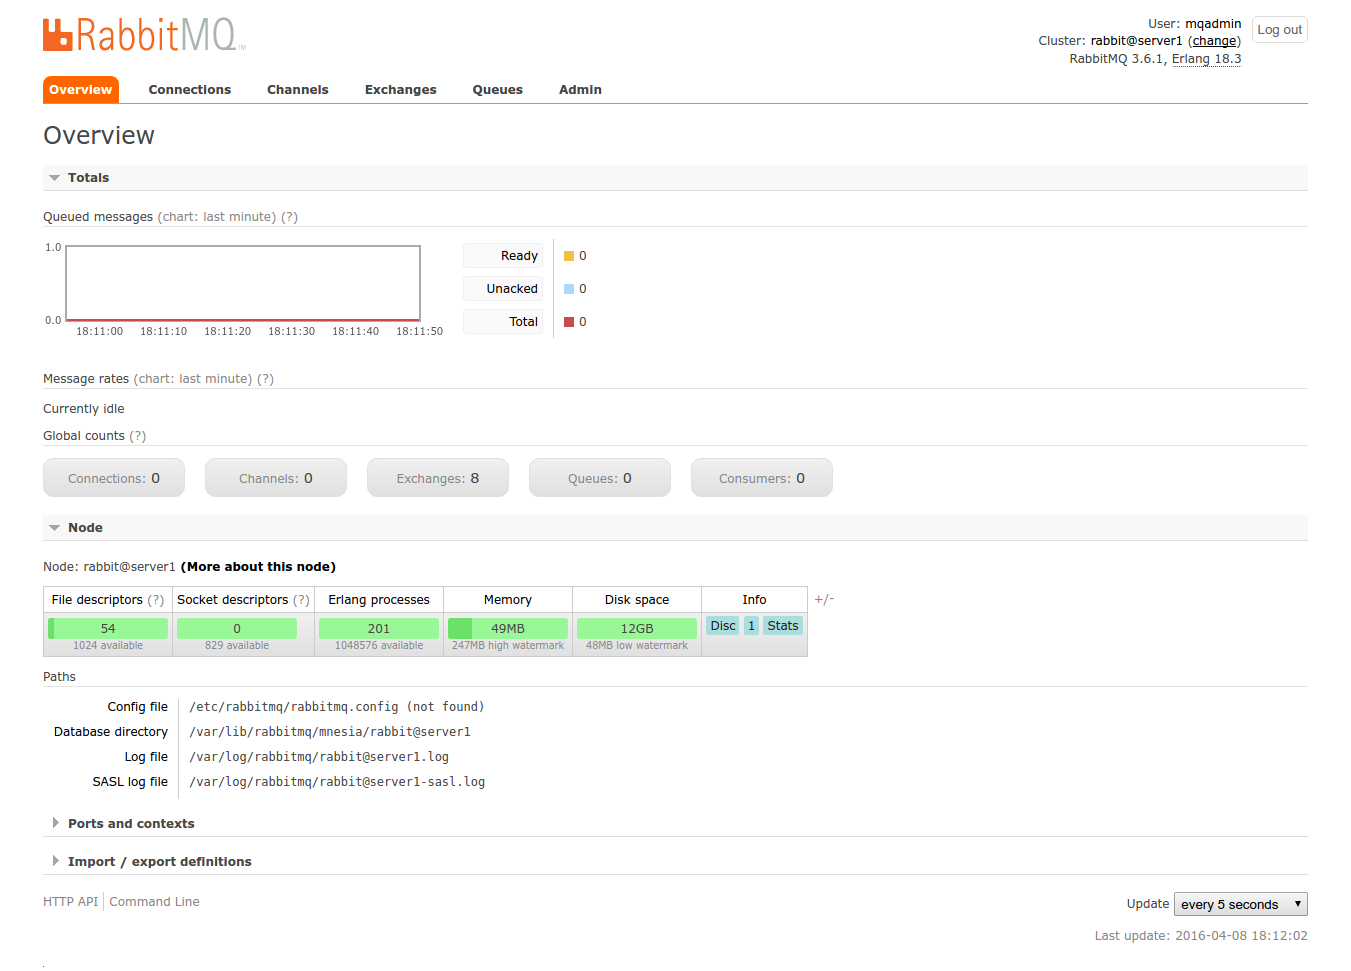 RabbitMQ Management